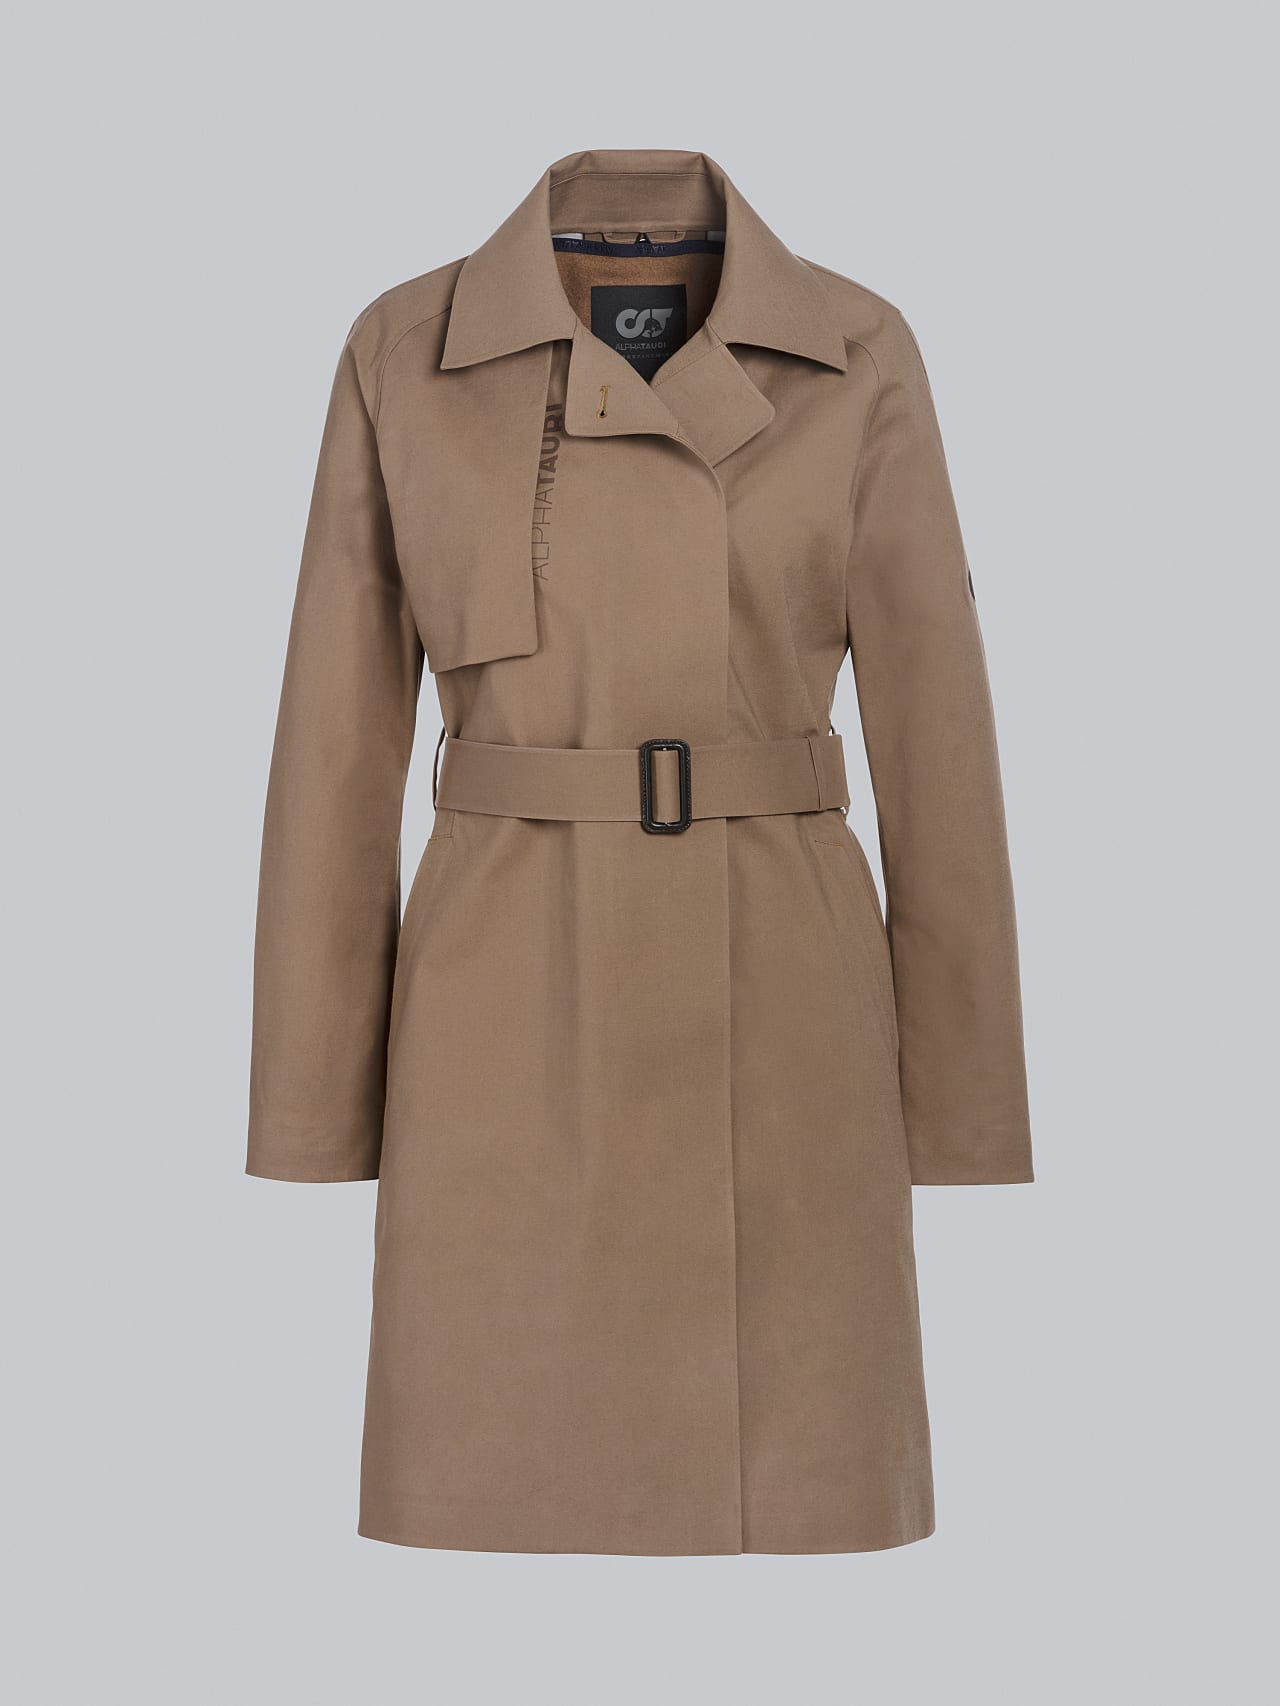 OMANI V1.Y5.02 Packable and Waterproof Trench Coat gold Back Alpha Tauri